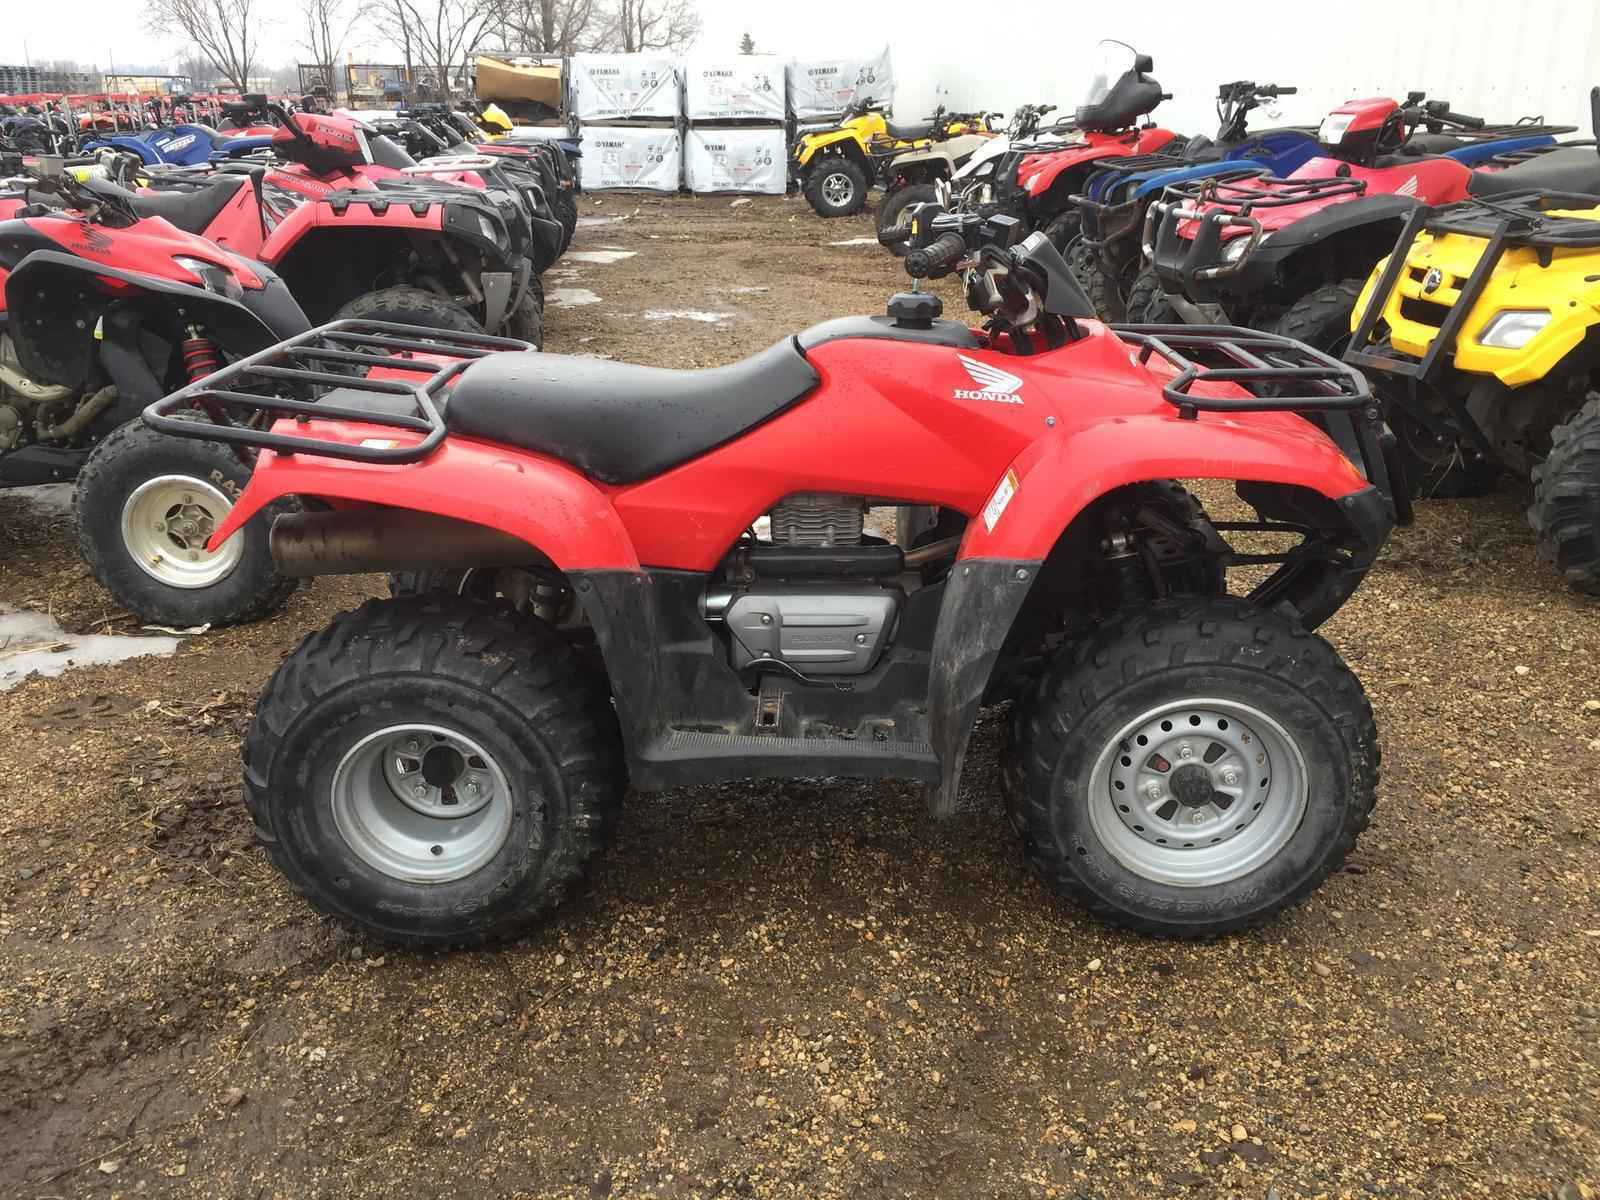 Used 2013 Honda Recon 250 ES ATVs For Sale in South Dakota ...